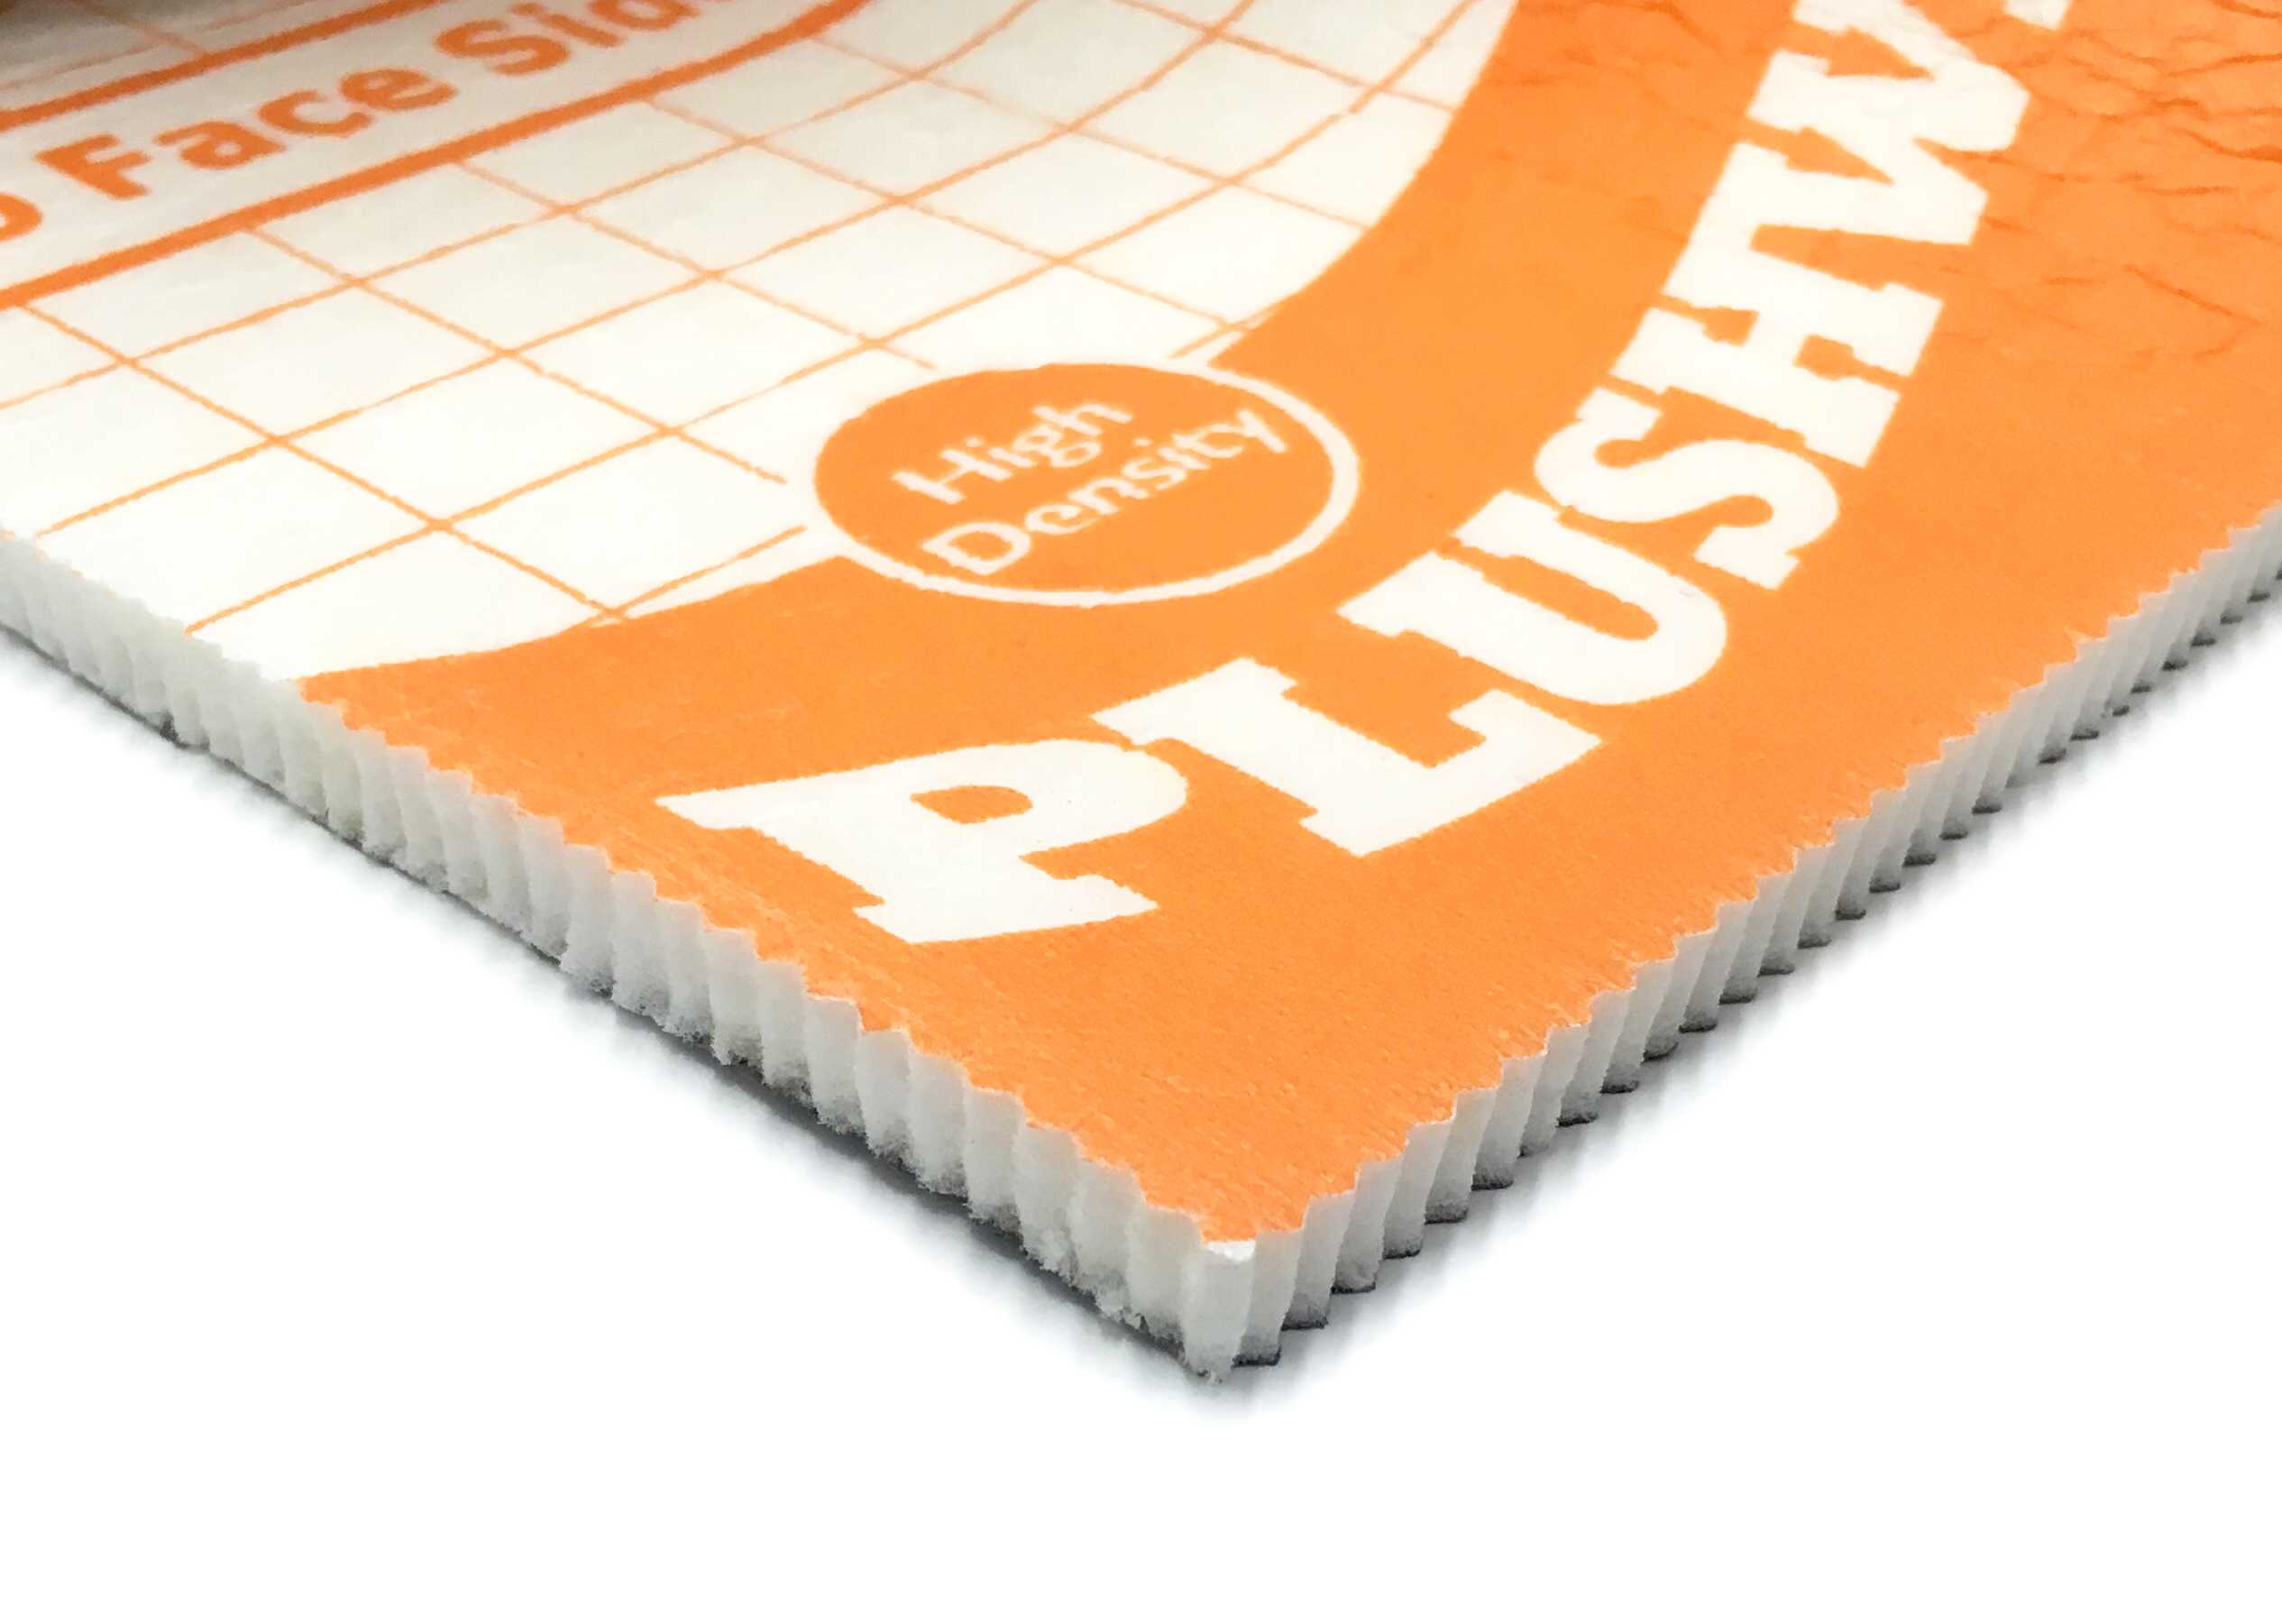 Plushwalk 10mm - Luxury PU Foam Carpet Underlay